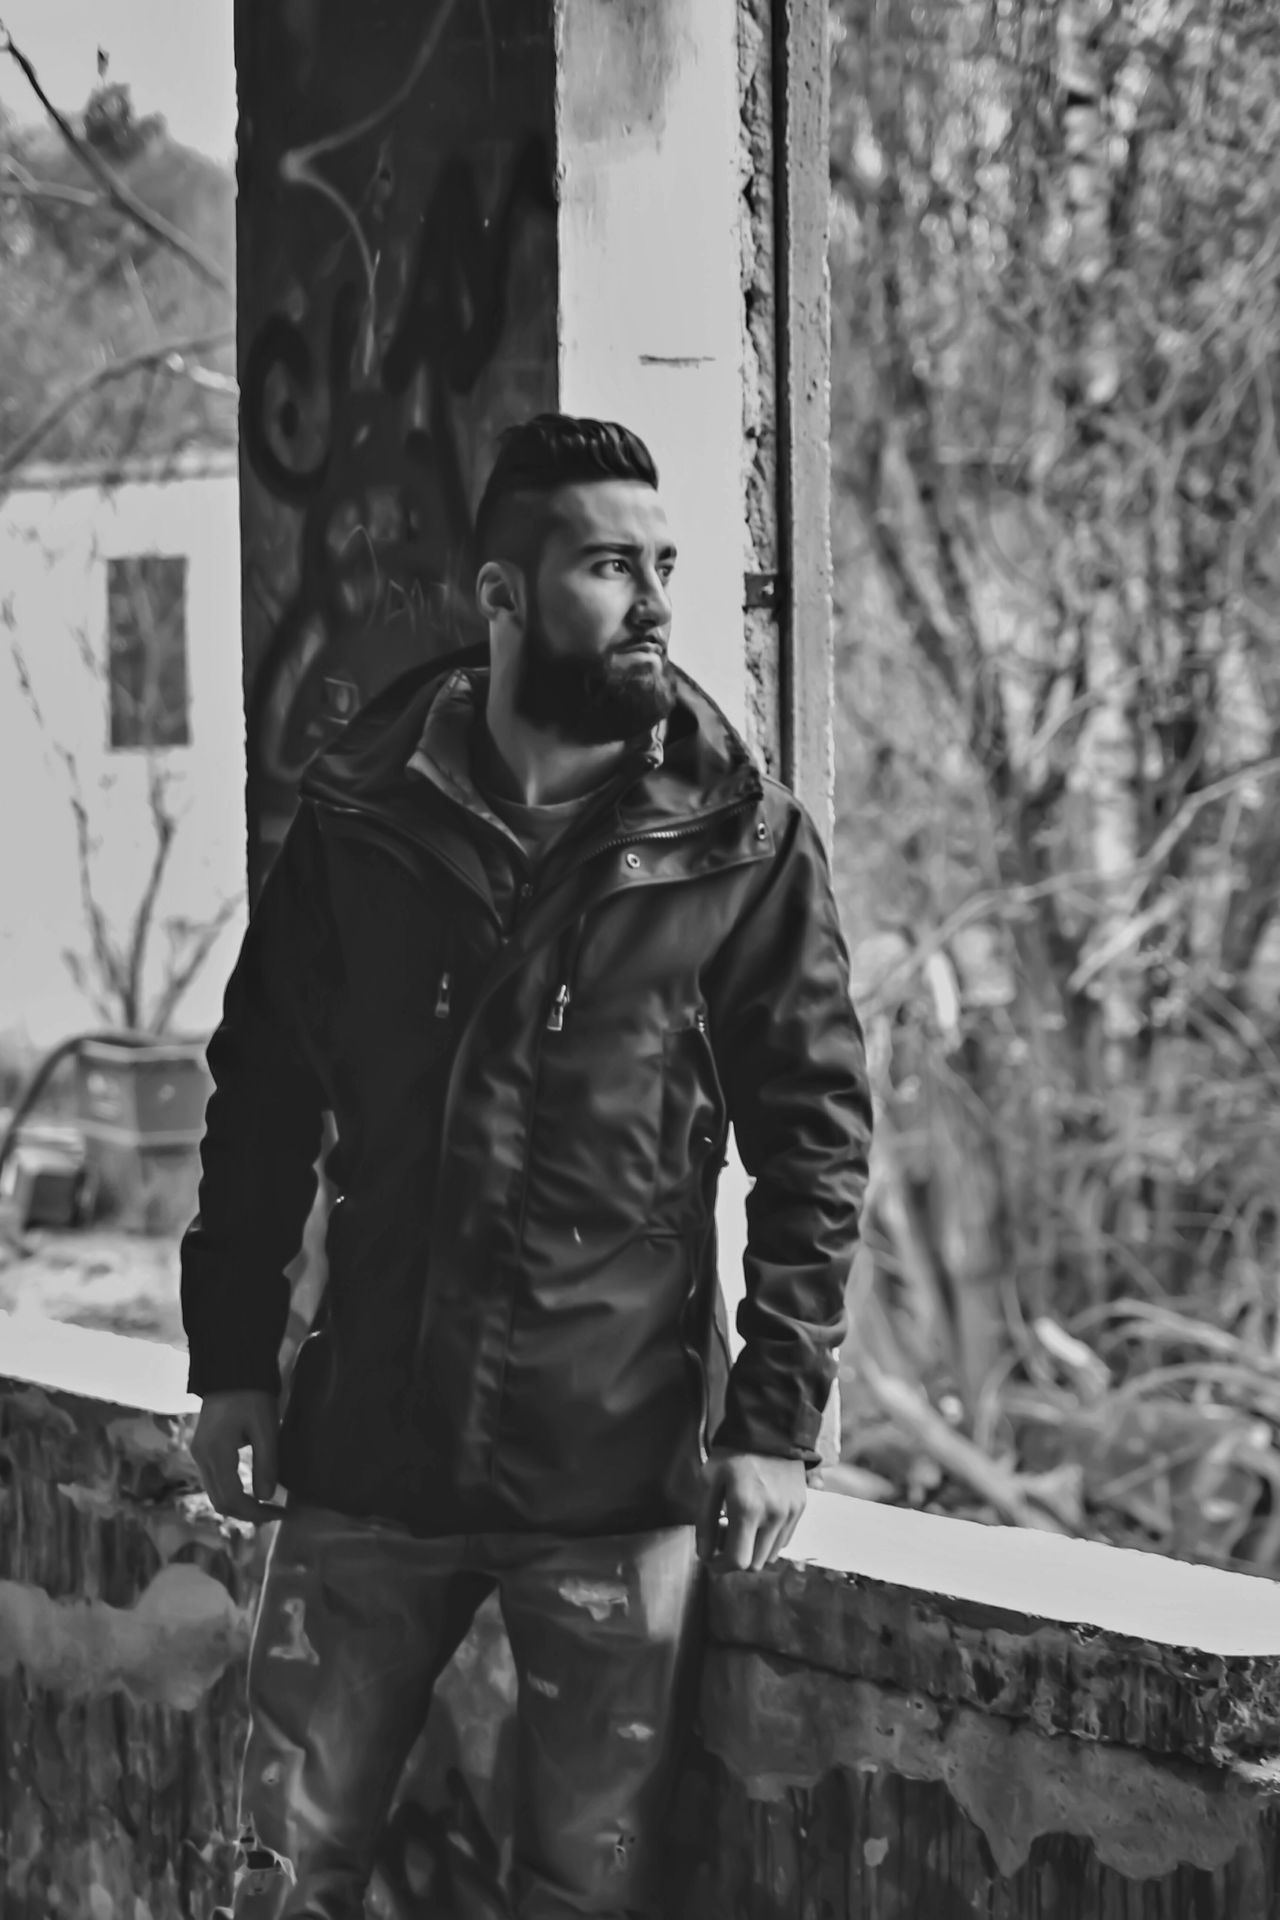 Male Model Burhan Özel Freilassing Bnw_city EyeEm Gallery Bnw_worldwide Showcase March This Week On Eyeem Bnw_society Bnw_collection Casualwear Casual Clothing Abondened Places Abondoned Buildings Learn & Shoot: Balancing Elements Pose For The Camera Pose BART